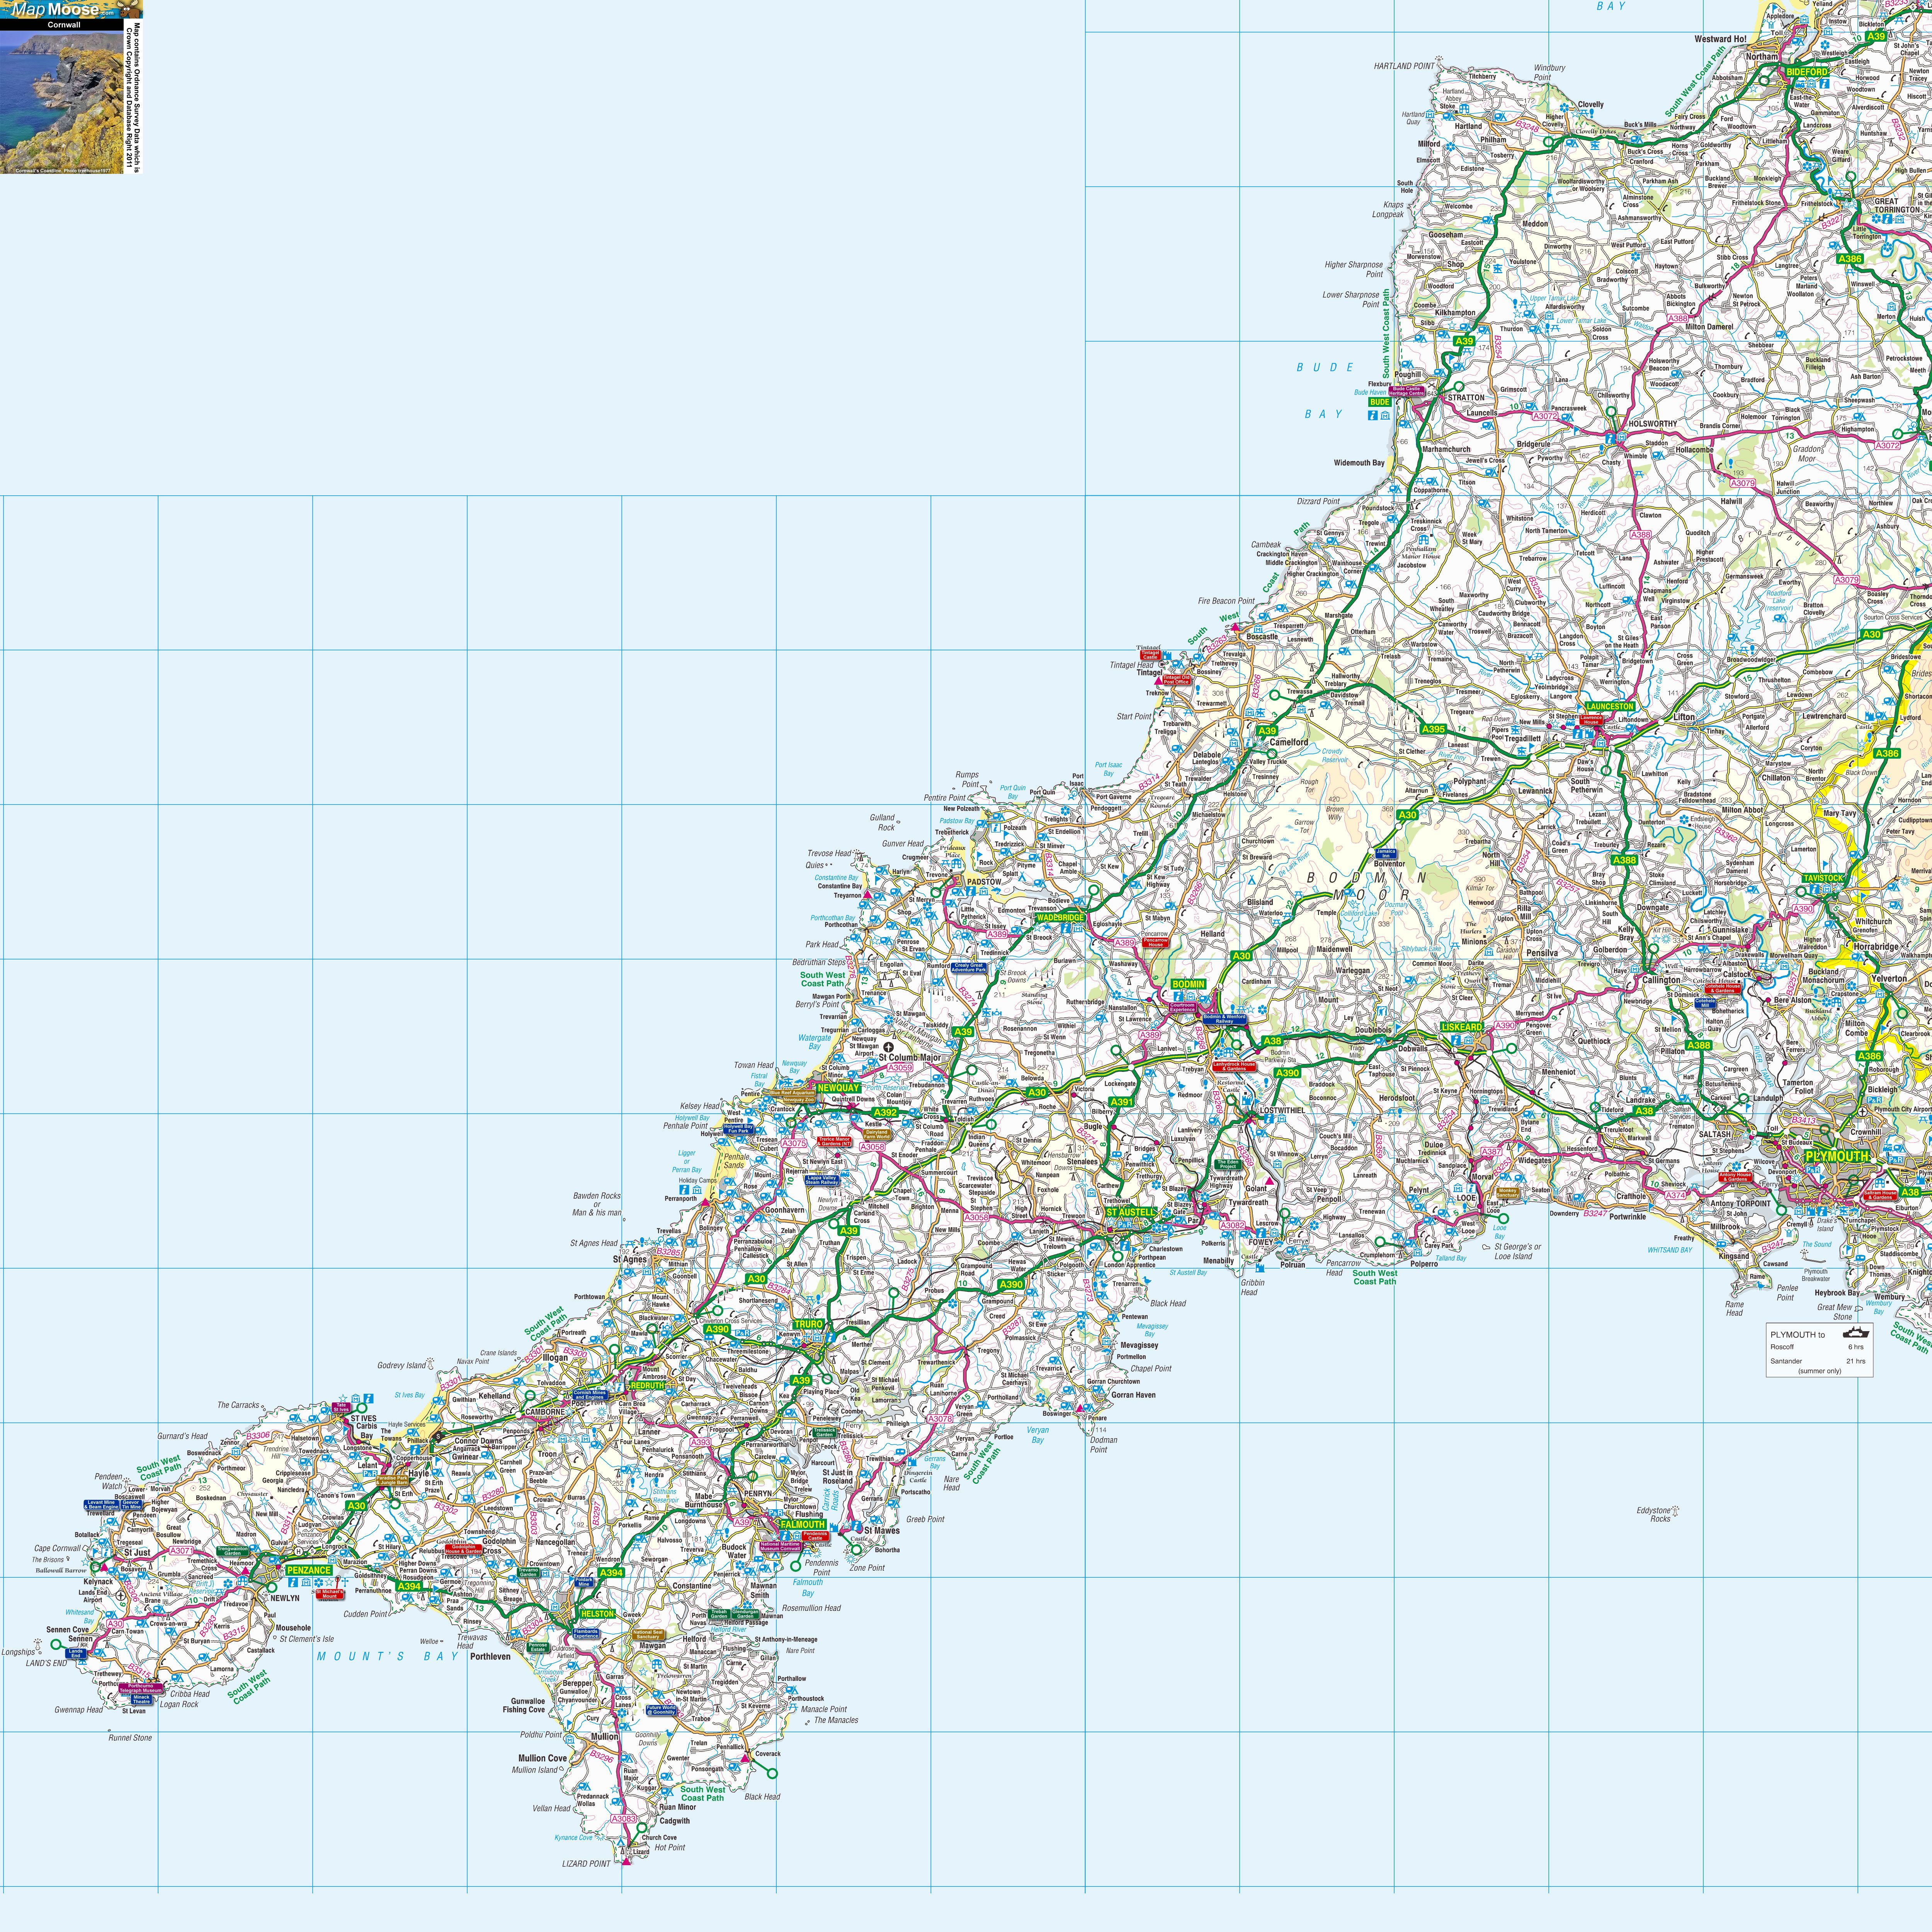 En iyi 17 fikir, Map Of Cornwall Pinterest'te | Cornwall ve Ingiltere